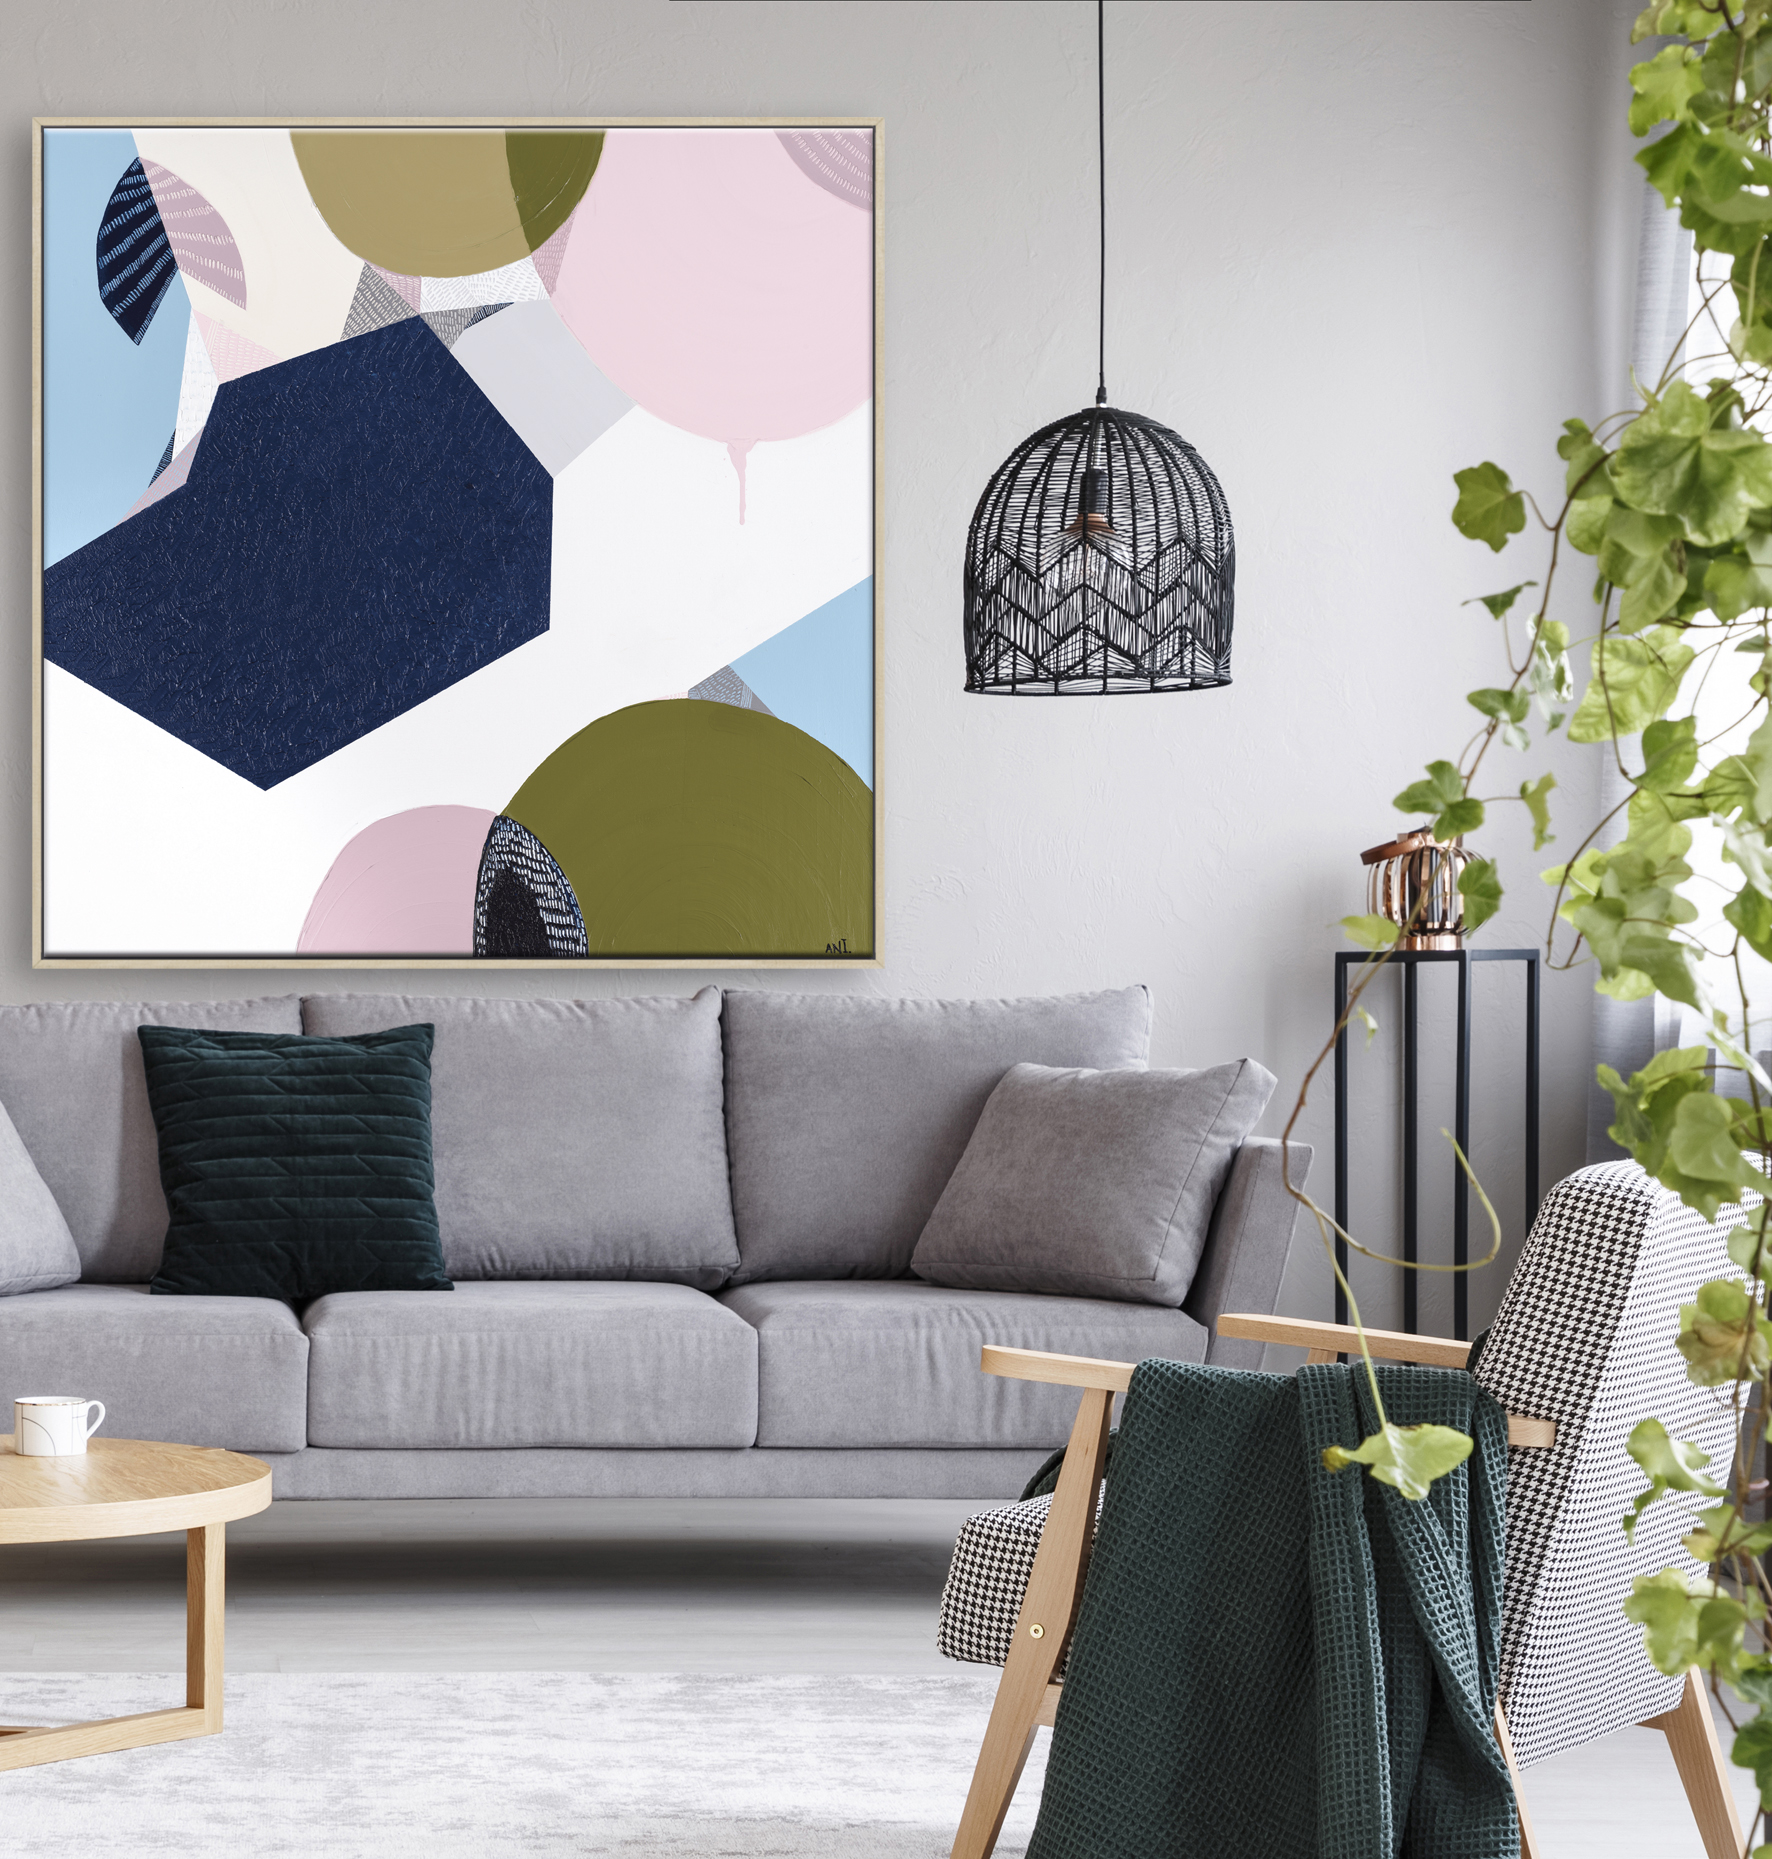 Pink Poster Above Grey Sofa In Living Room Interior With Wooden